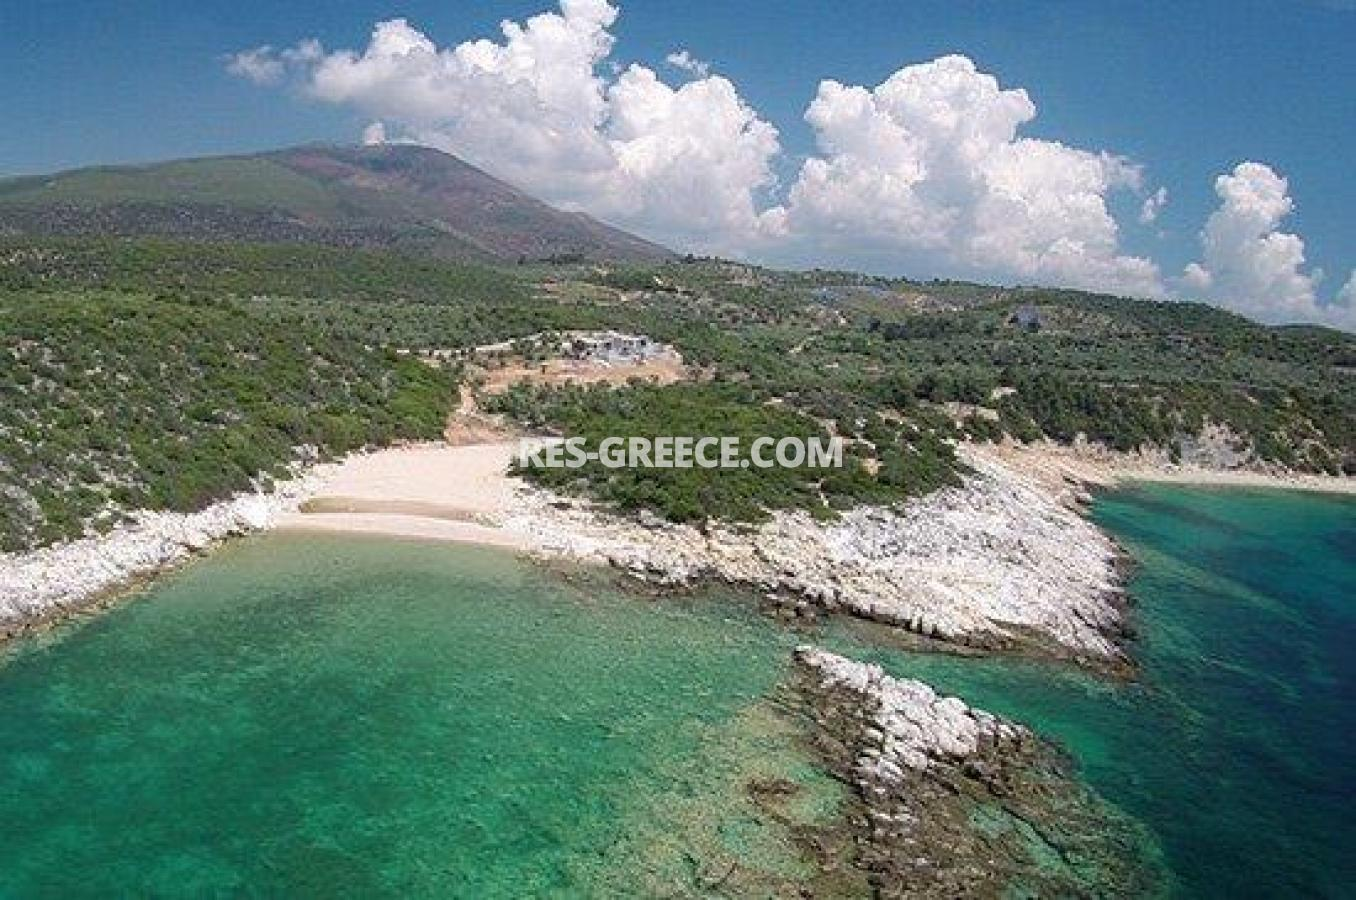 Villa MM, Northern Aegean Islands, Greece - 2 luxury properties in a gated complex with private beach - Photo 28